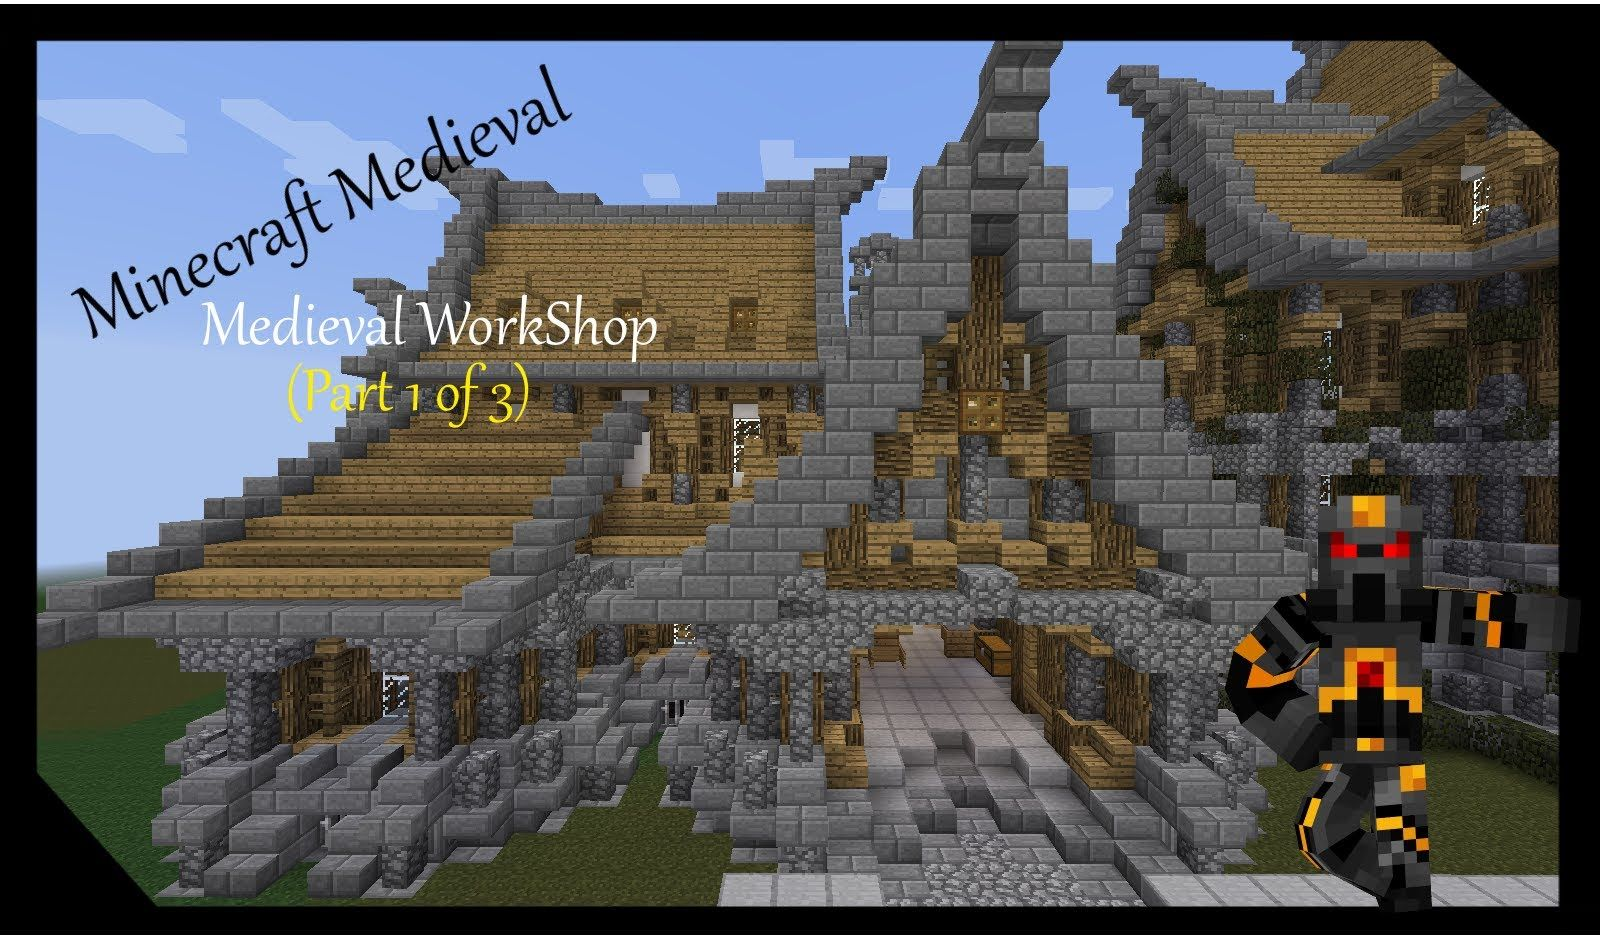 Minecraft Medieval WorkShop- Tutorial- (Part 1 of 3) How to Build a